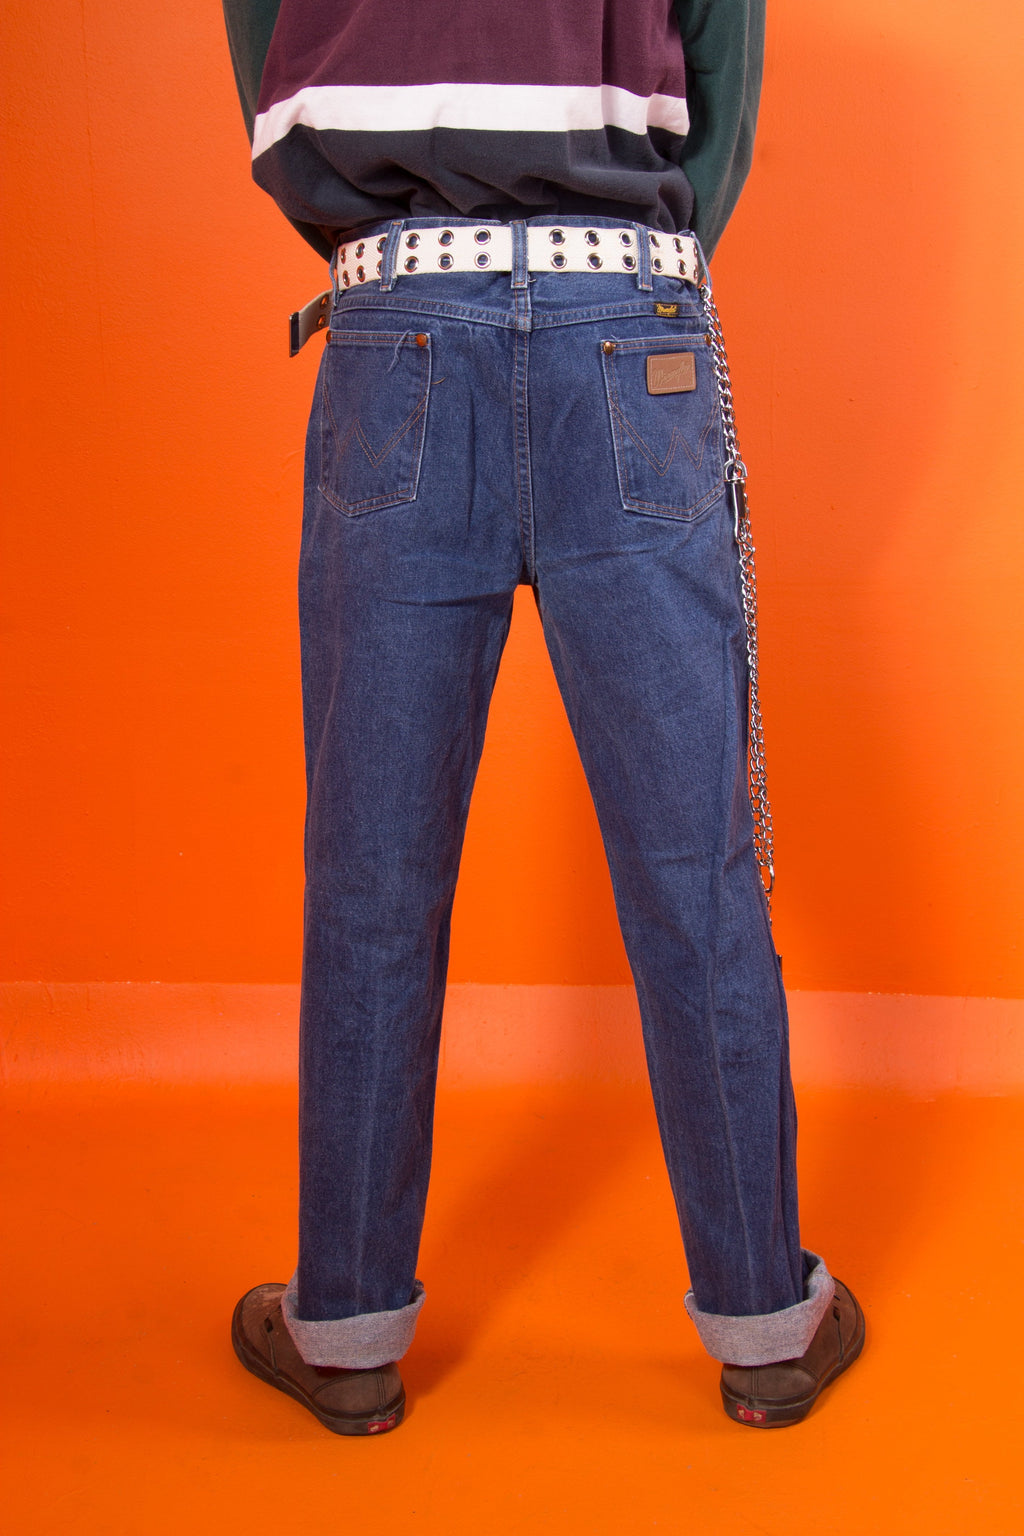 Vintage - classic wrangler jeans